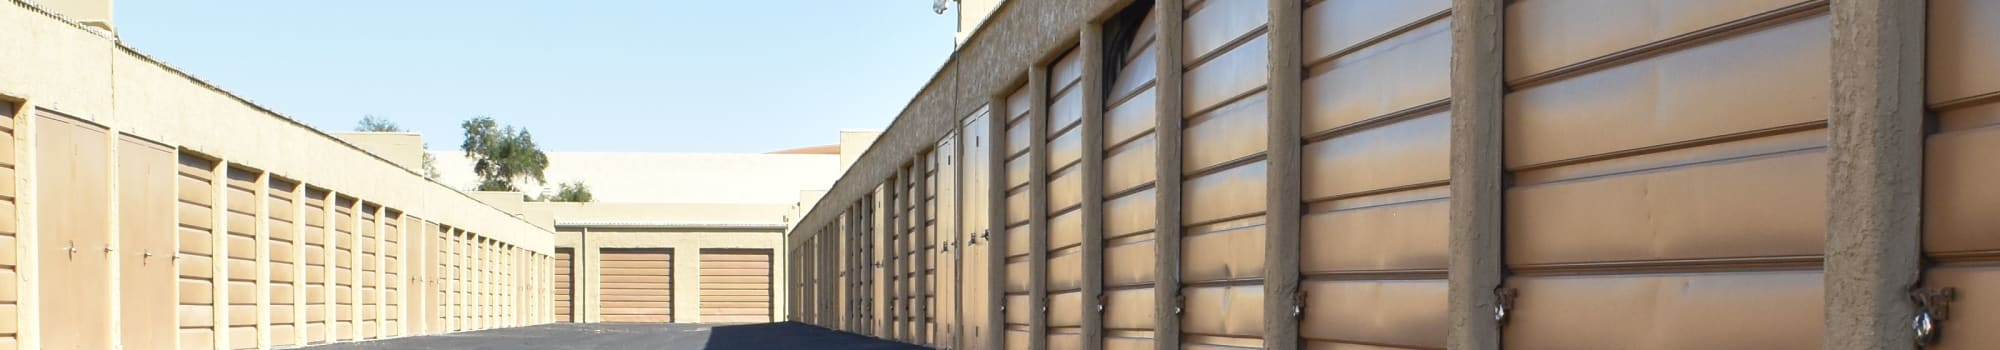 Contact us today at AAA Alliance Self Storage in Tempe, Arizona